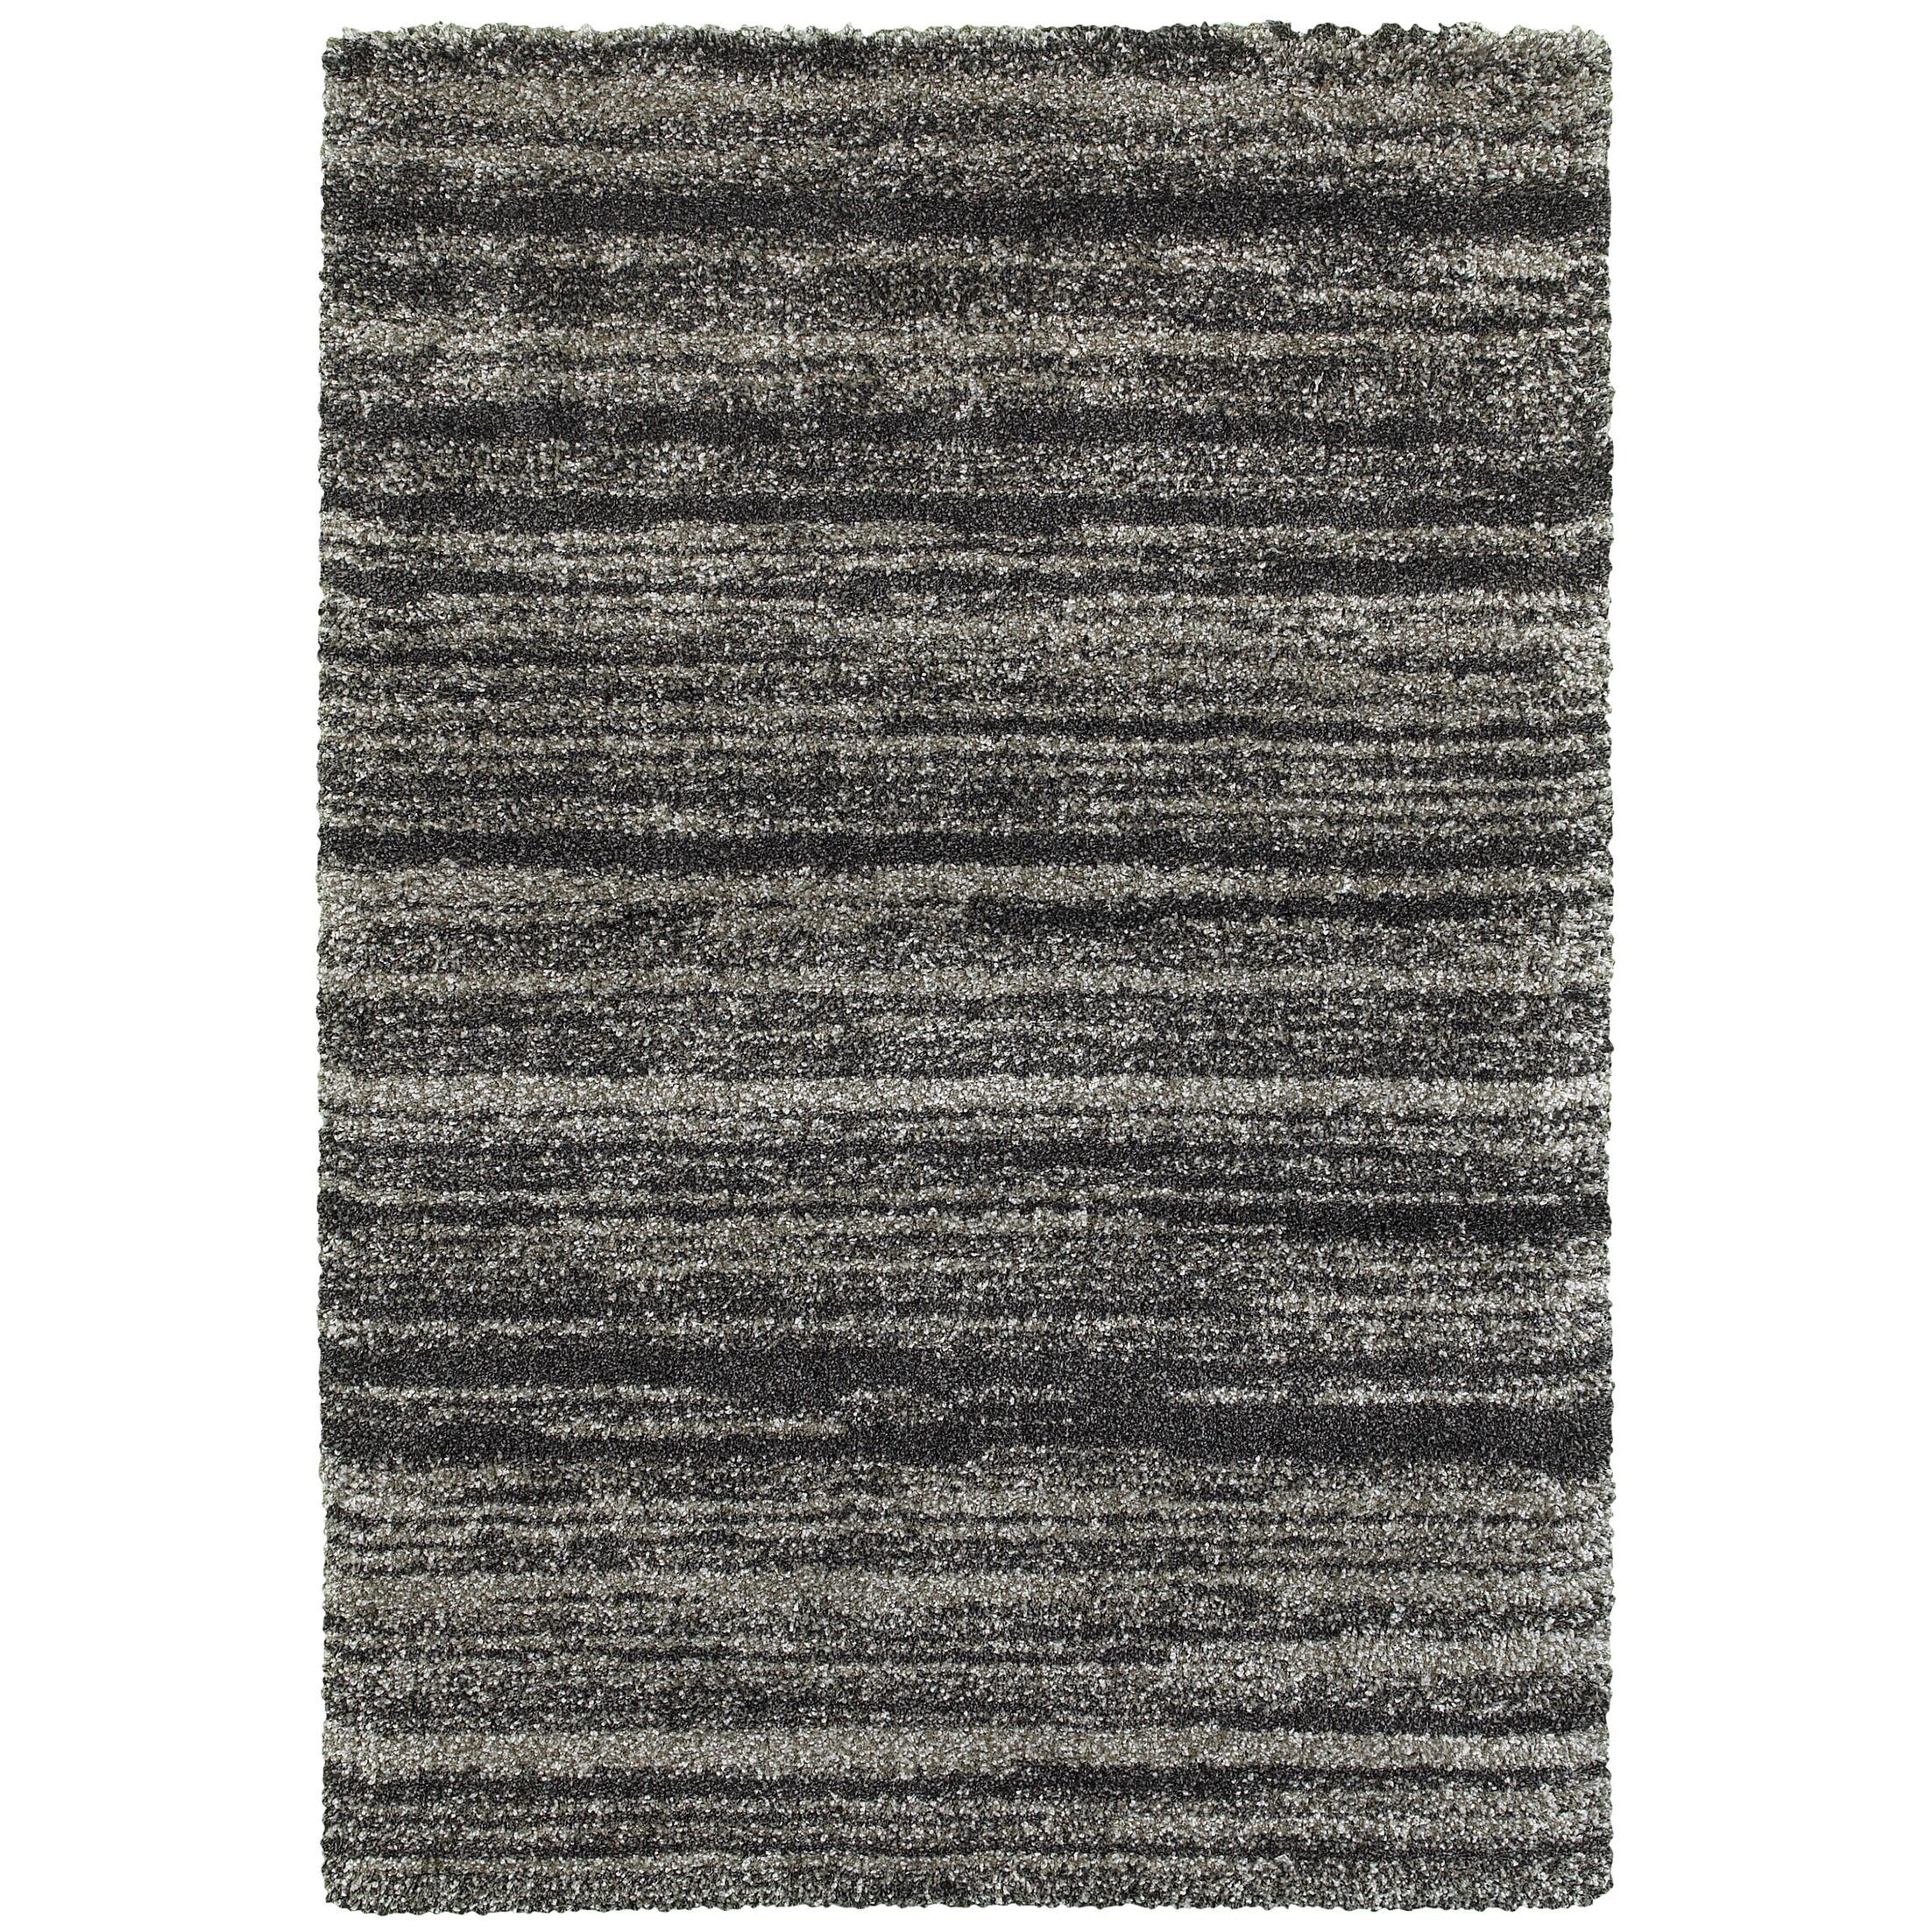 Barnhart Gray/Charcoal Area Rug Size: Rectangle 5'3